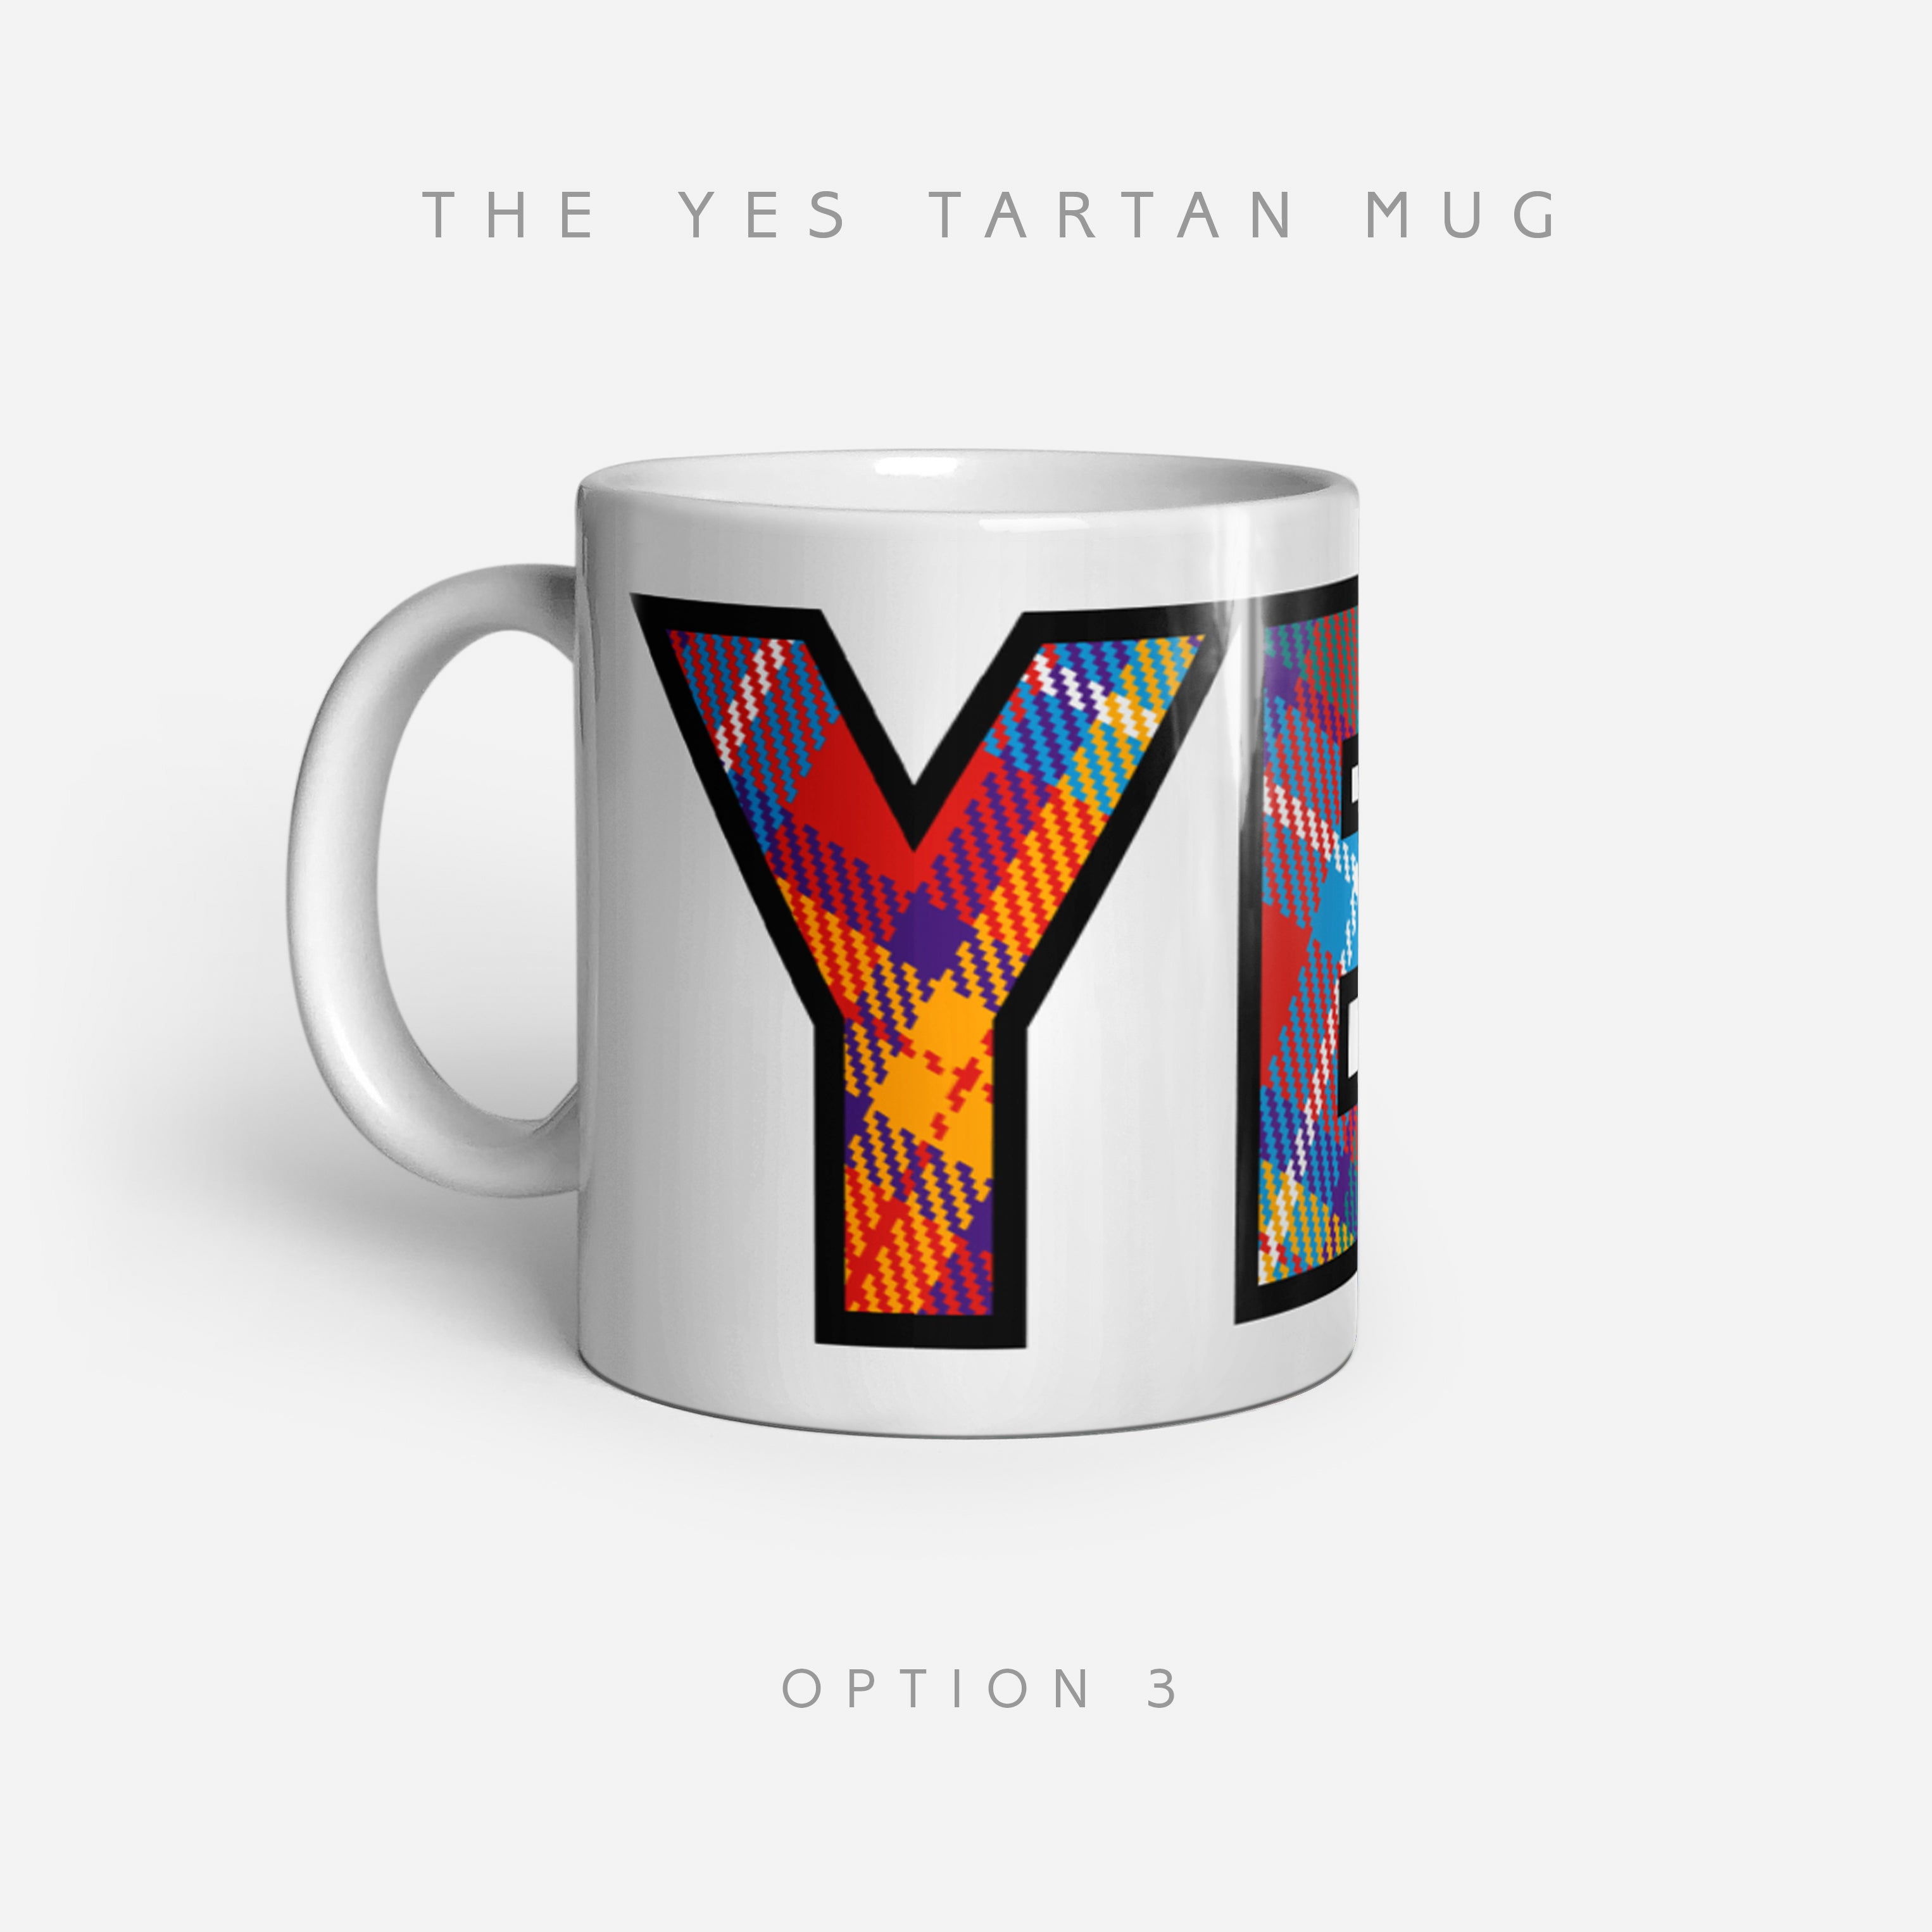 YES Tartan by Steven Patrick Sim - Alba gu bràth - The 11oz ceramic mugs